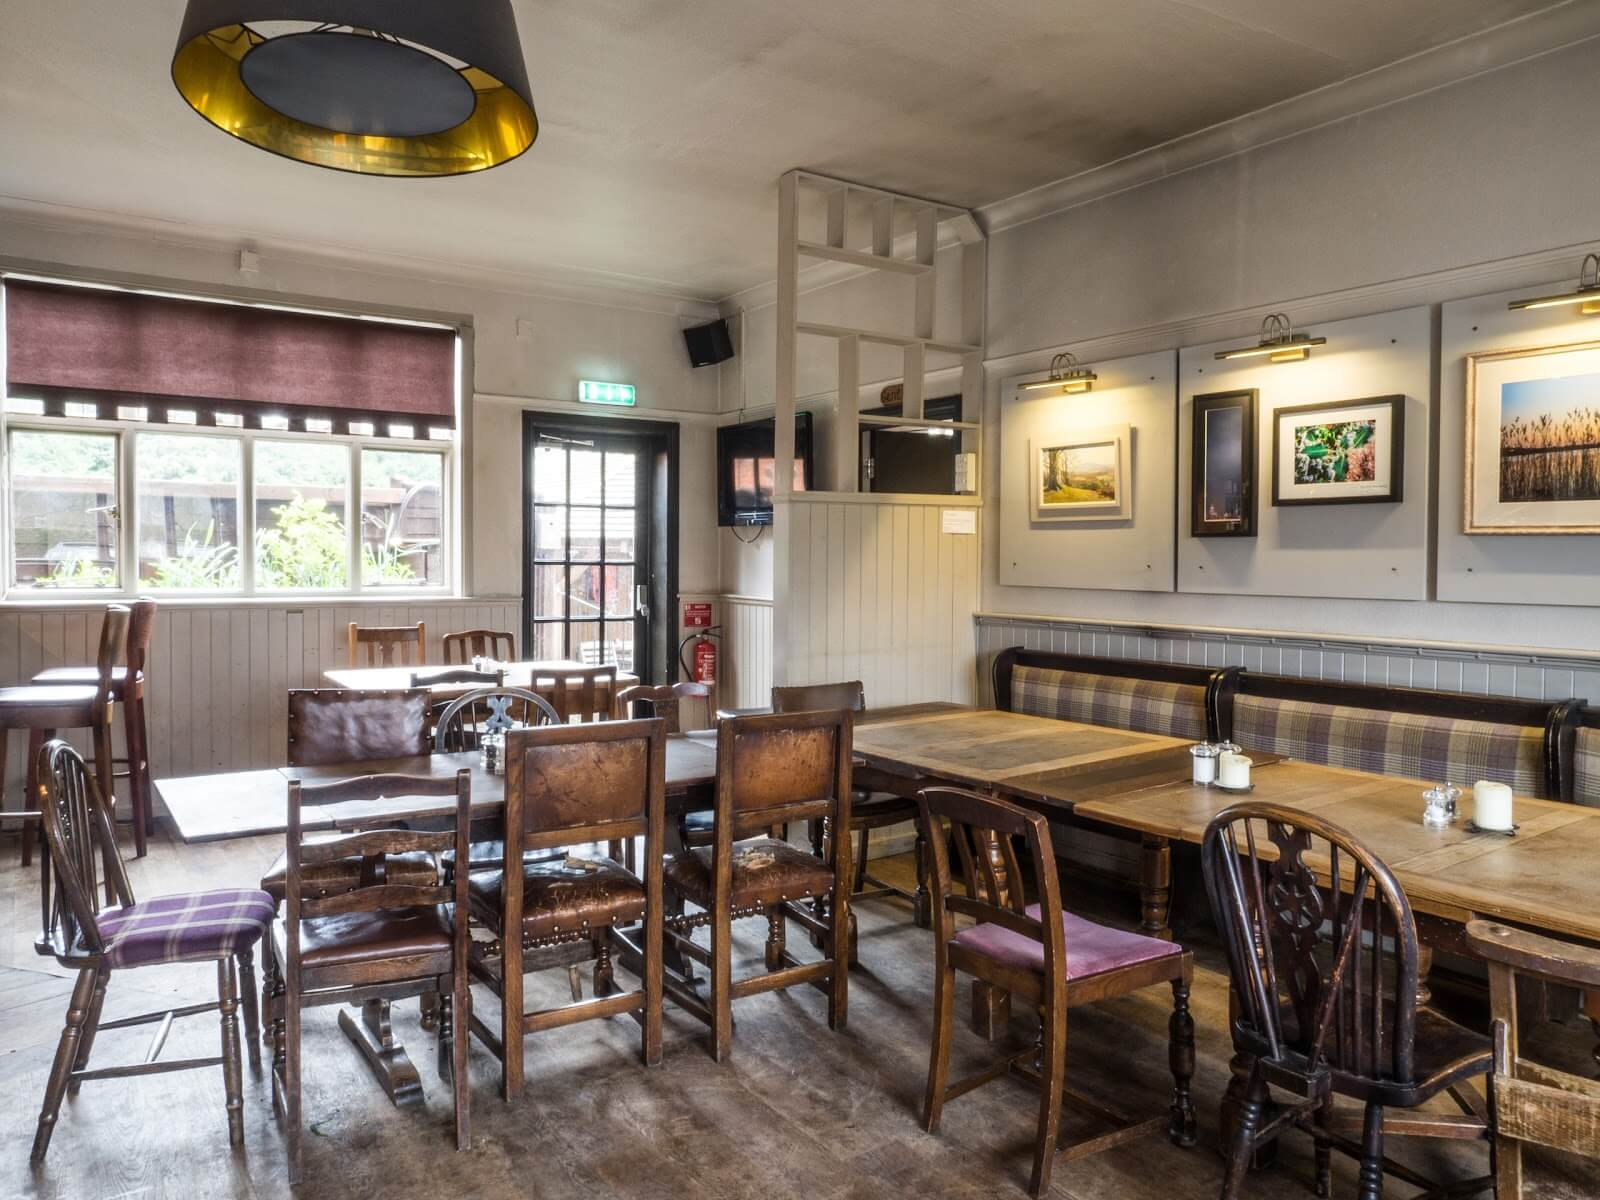 Restaurant Dining Area | The Mustcard